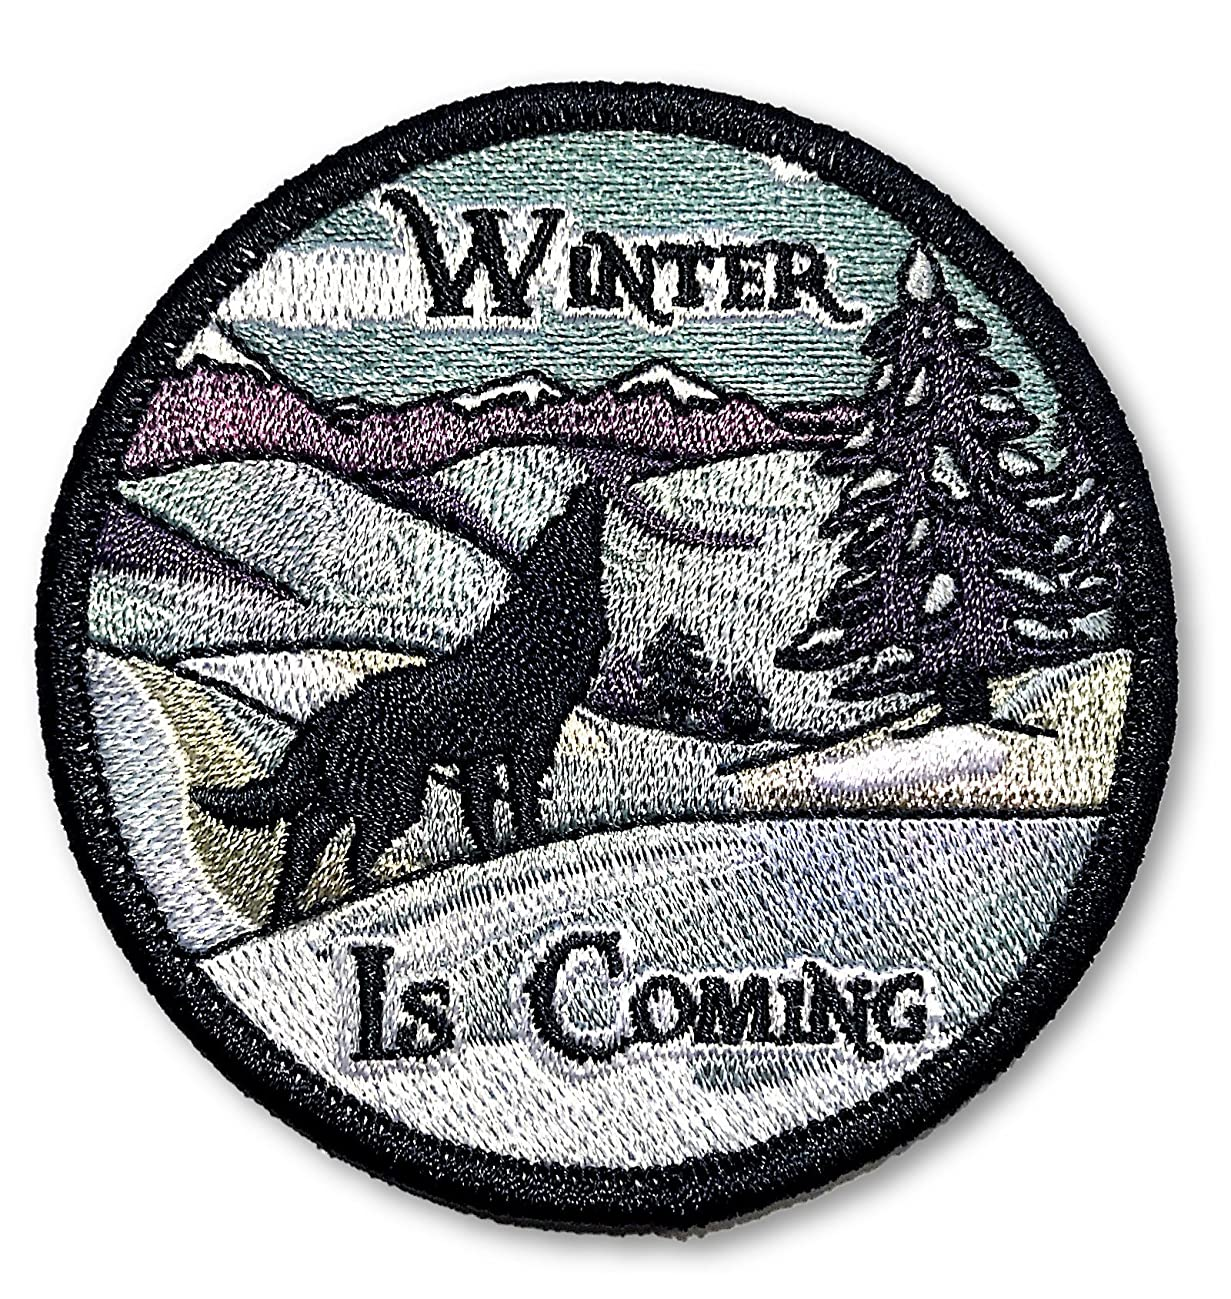 O'Houlihans - Winter is Coming - Game of Thrones Iron On Patch